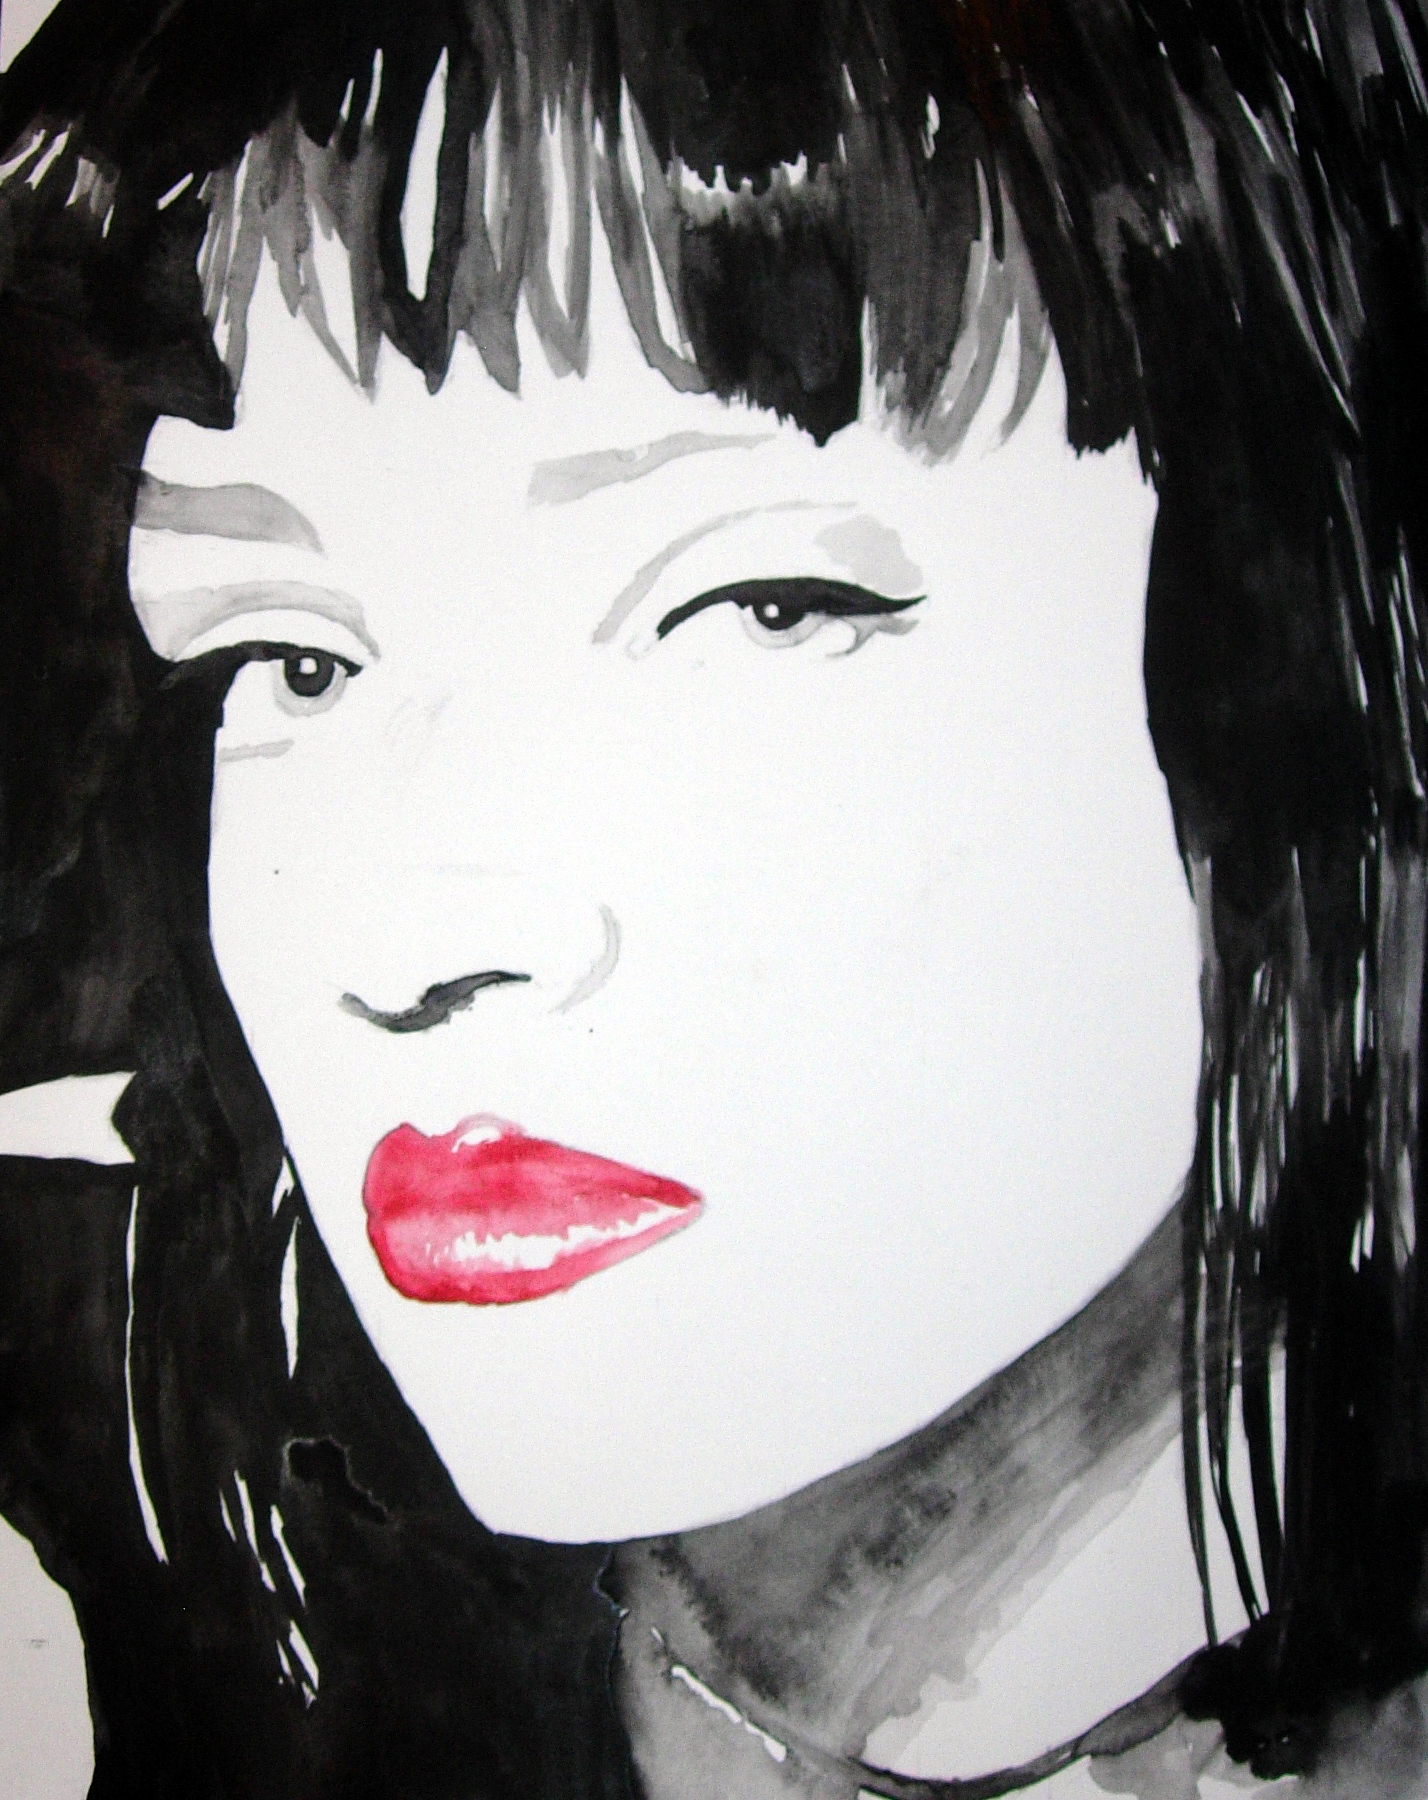 pulp fiction by mixtapegoddess HD Wallpaper